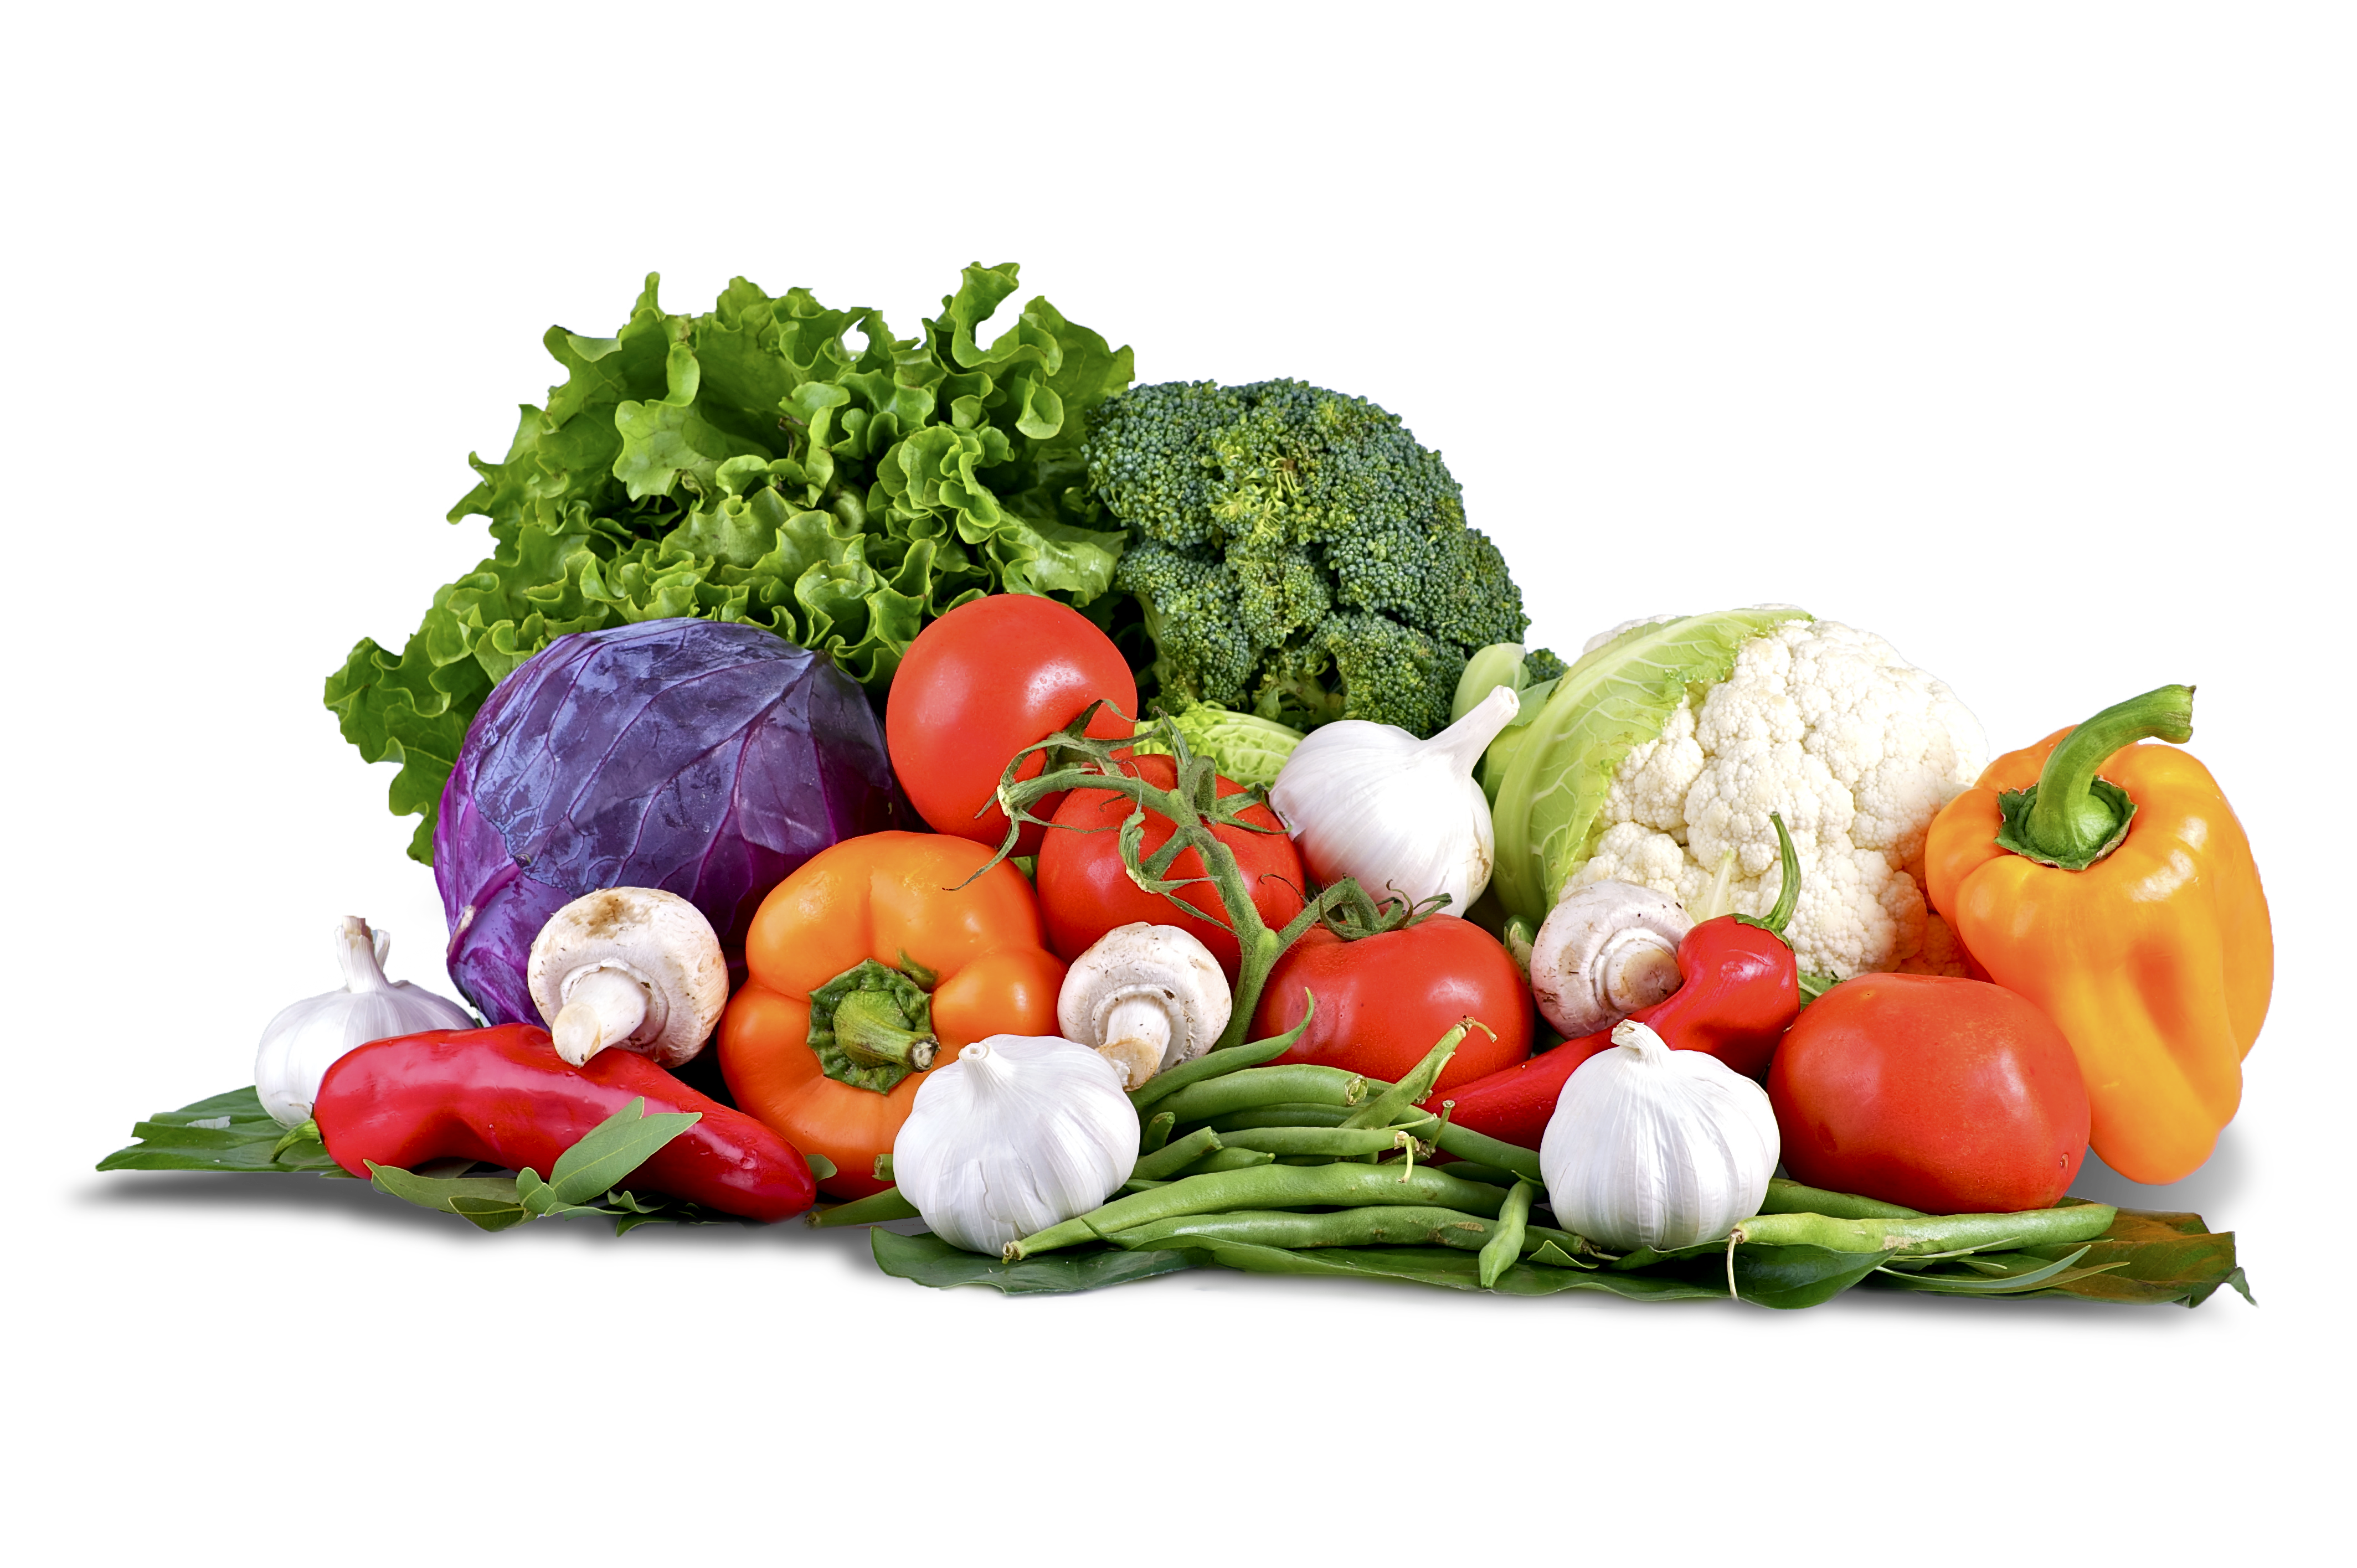 Raw Vegetable Picture Image